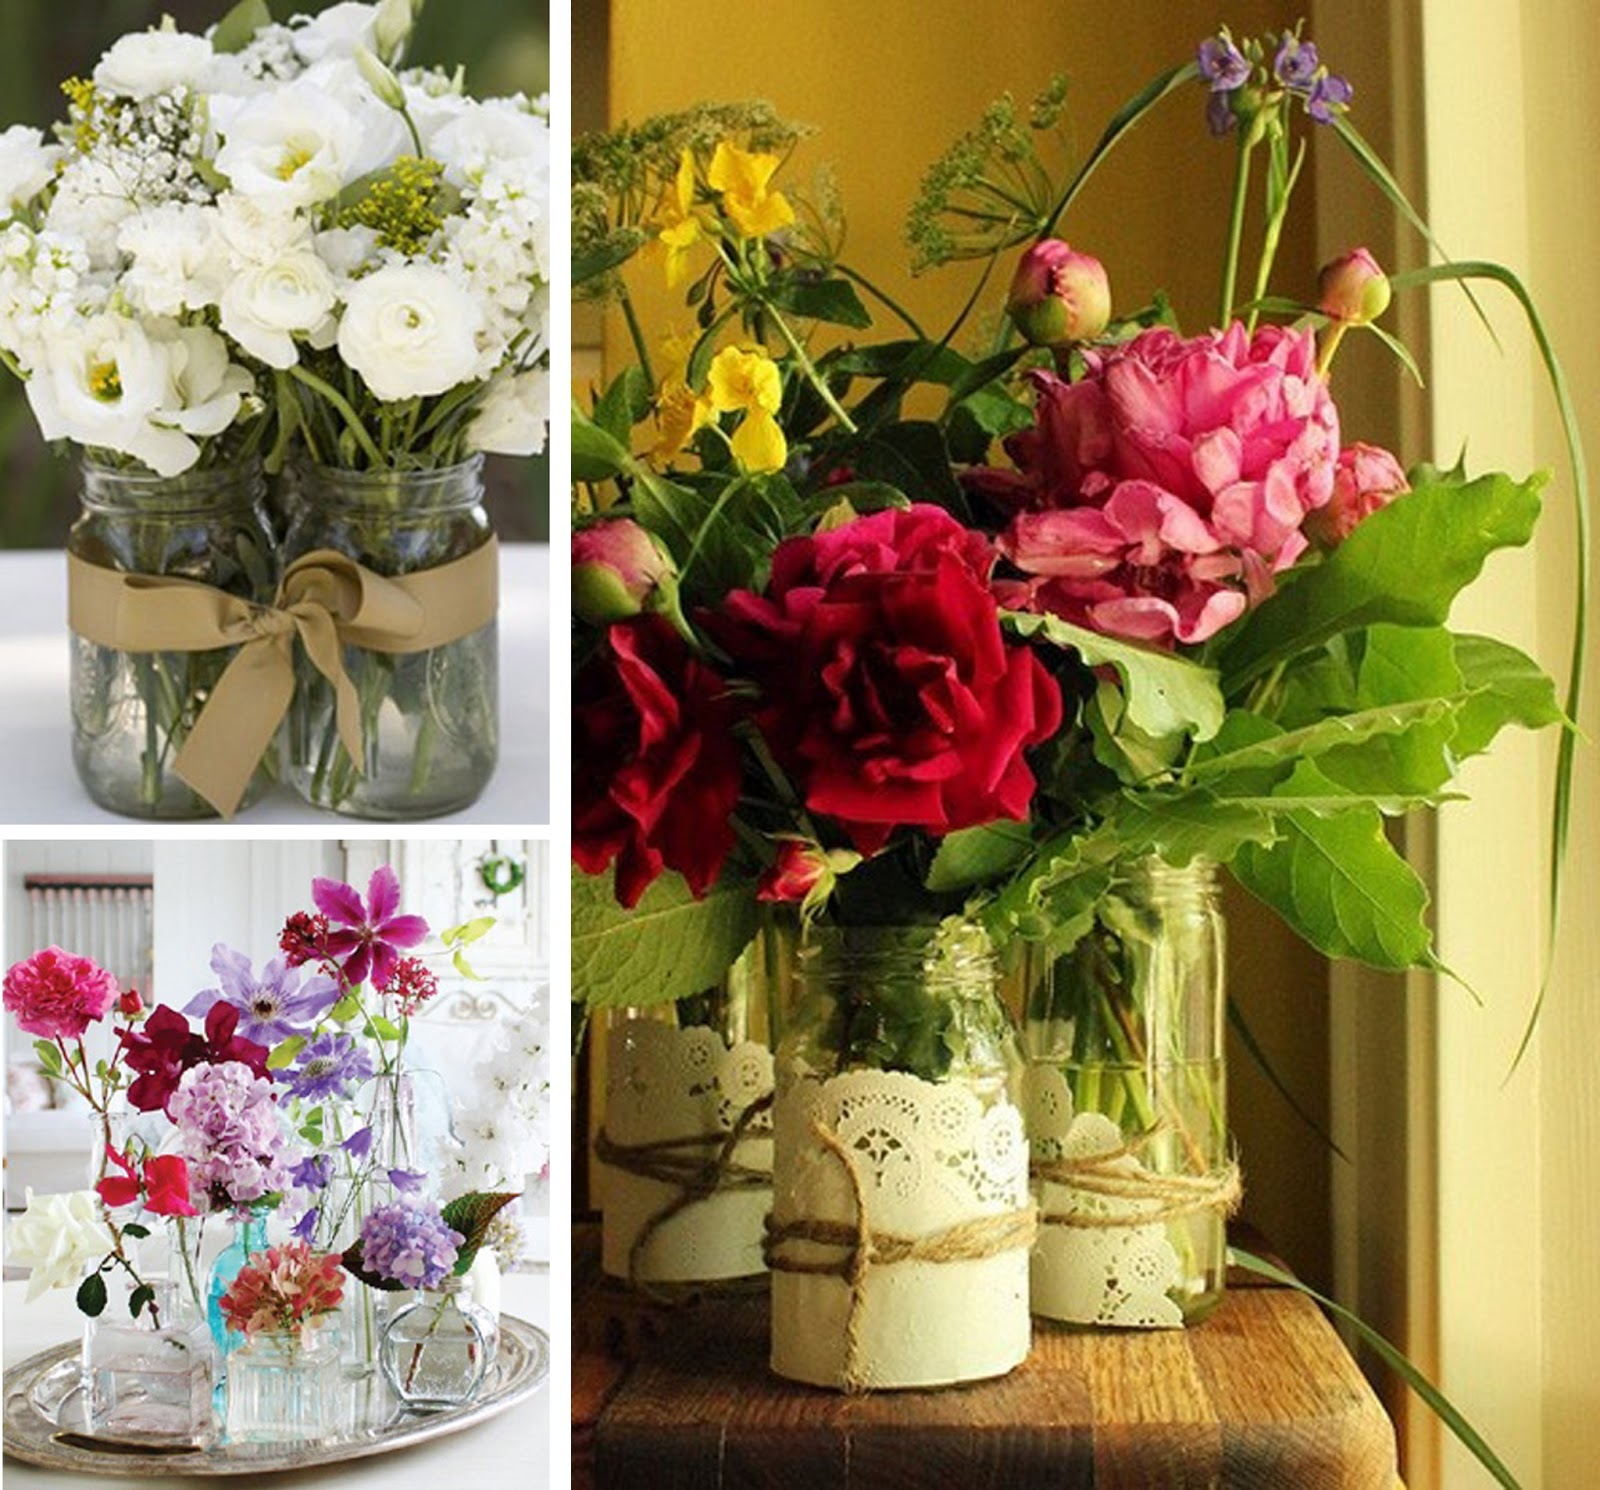 FLORES HOMEPERSONALSHOPPER